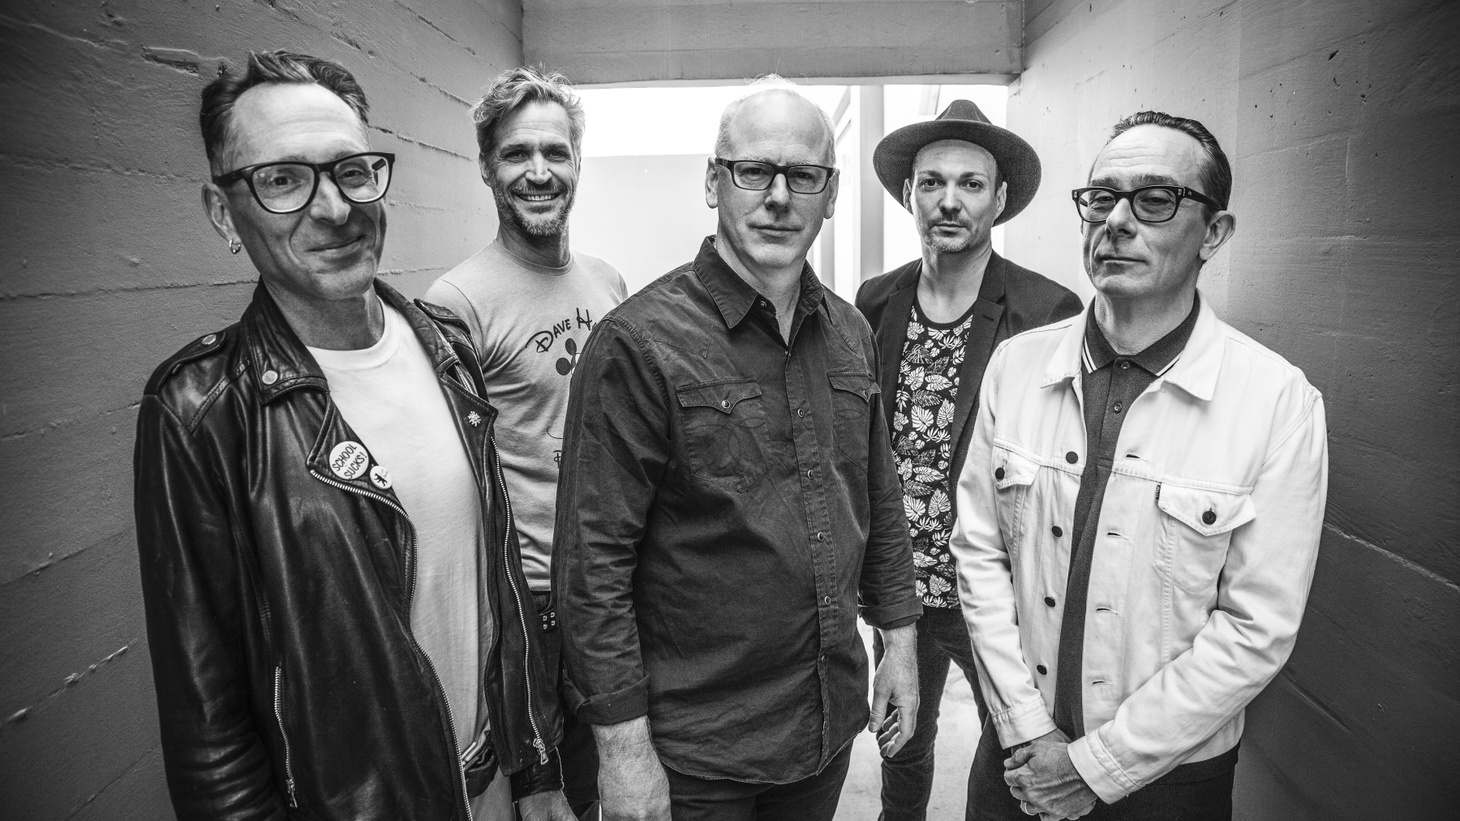 Formed in 1980, Bad Religion made the jump from underground punk to rock and roll mainstream.